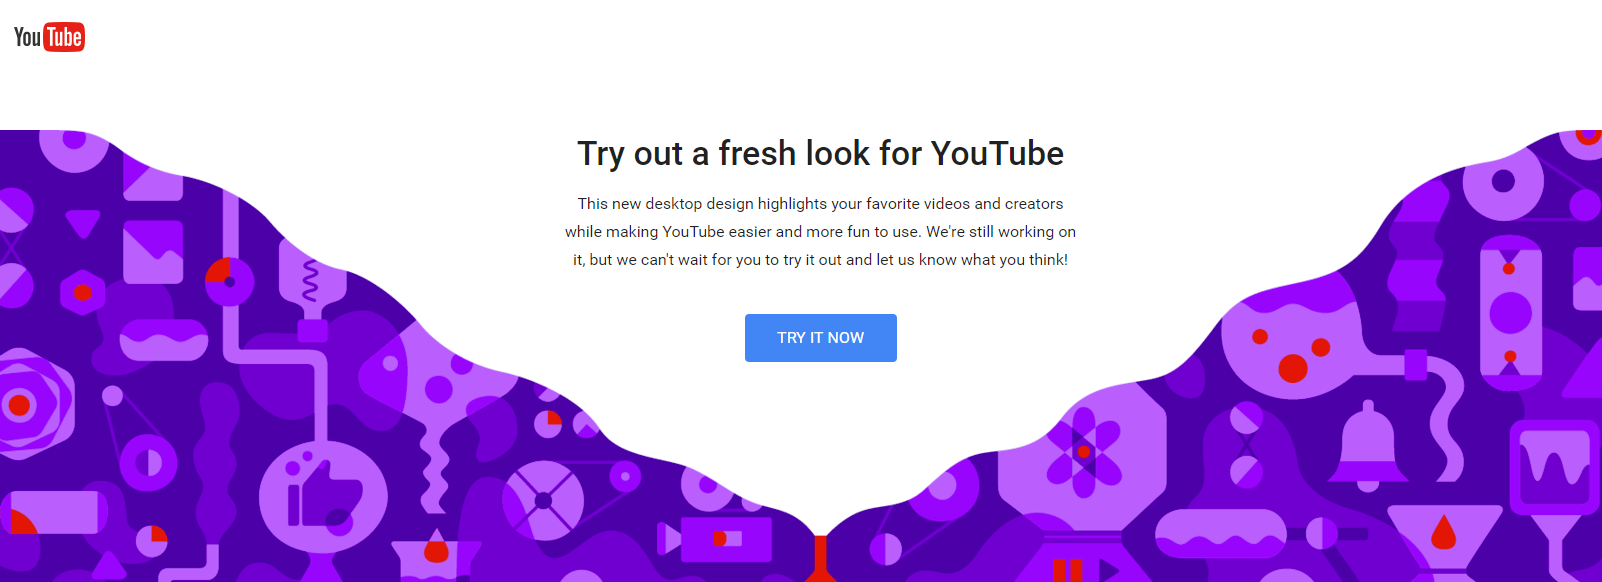 YouTube Releases New Desktop Layout, Including 'Dark Theme' | Social Media Today